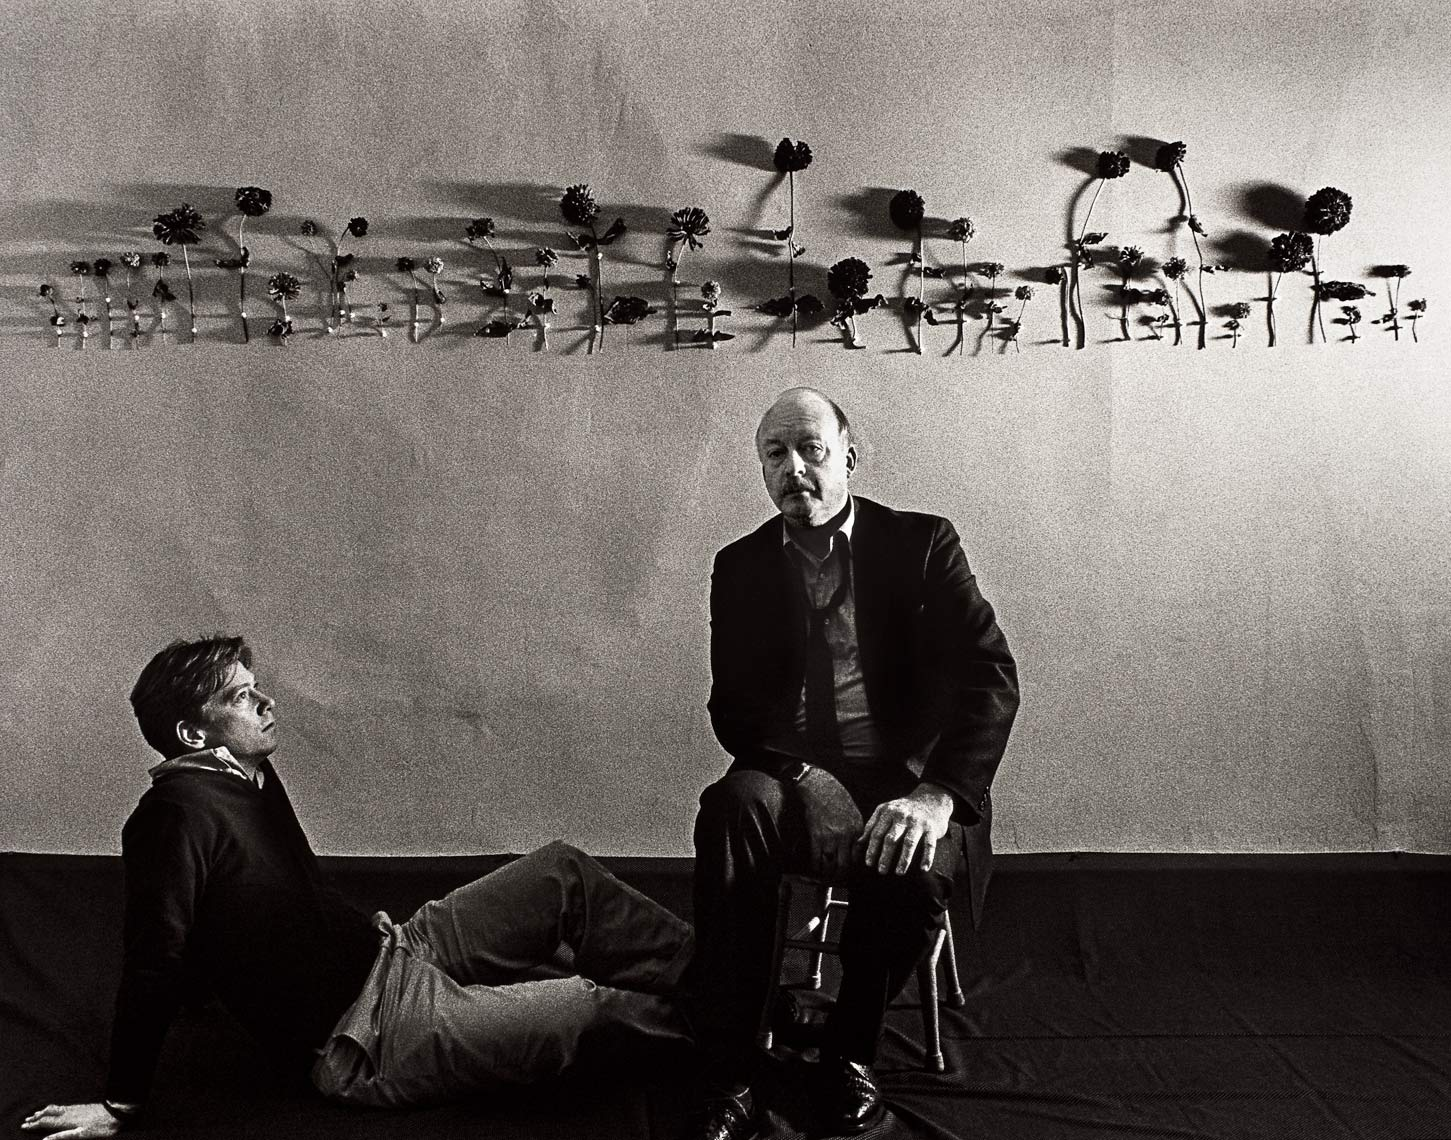 David Lebe; The Poets Jonathan Williams & Tom-Meyer, 1985, black and white photograph